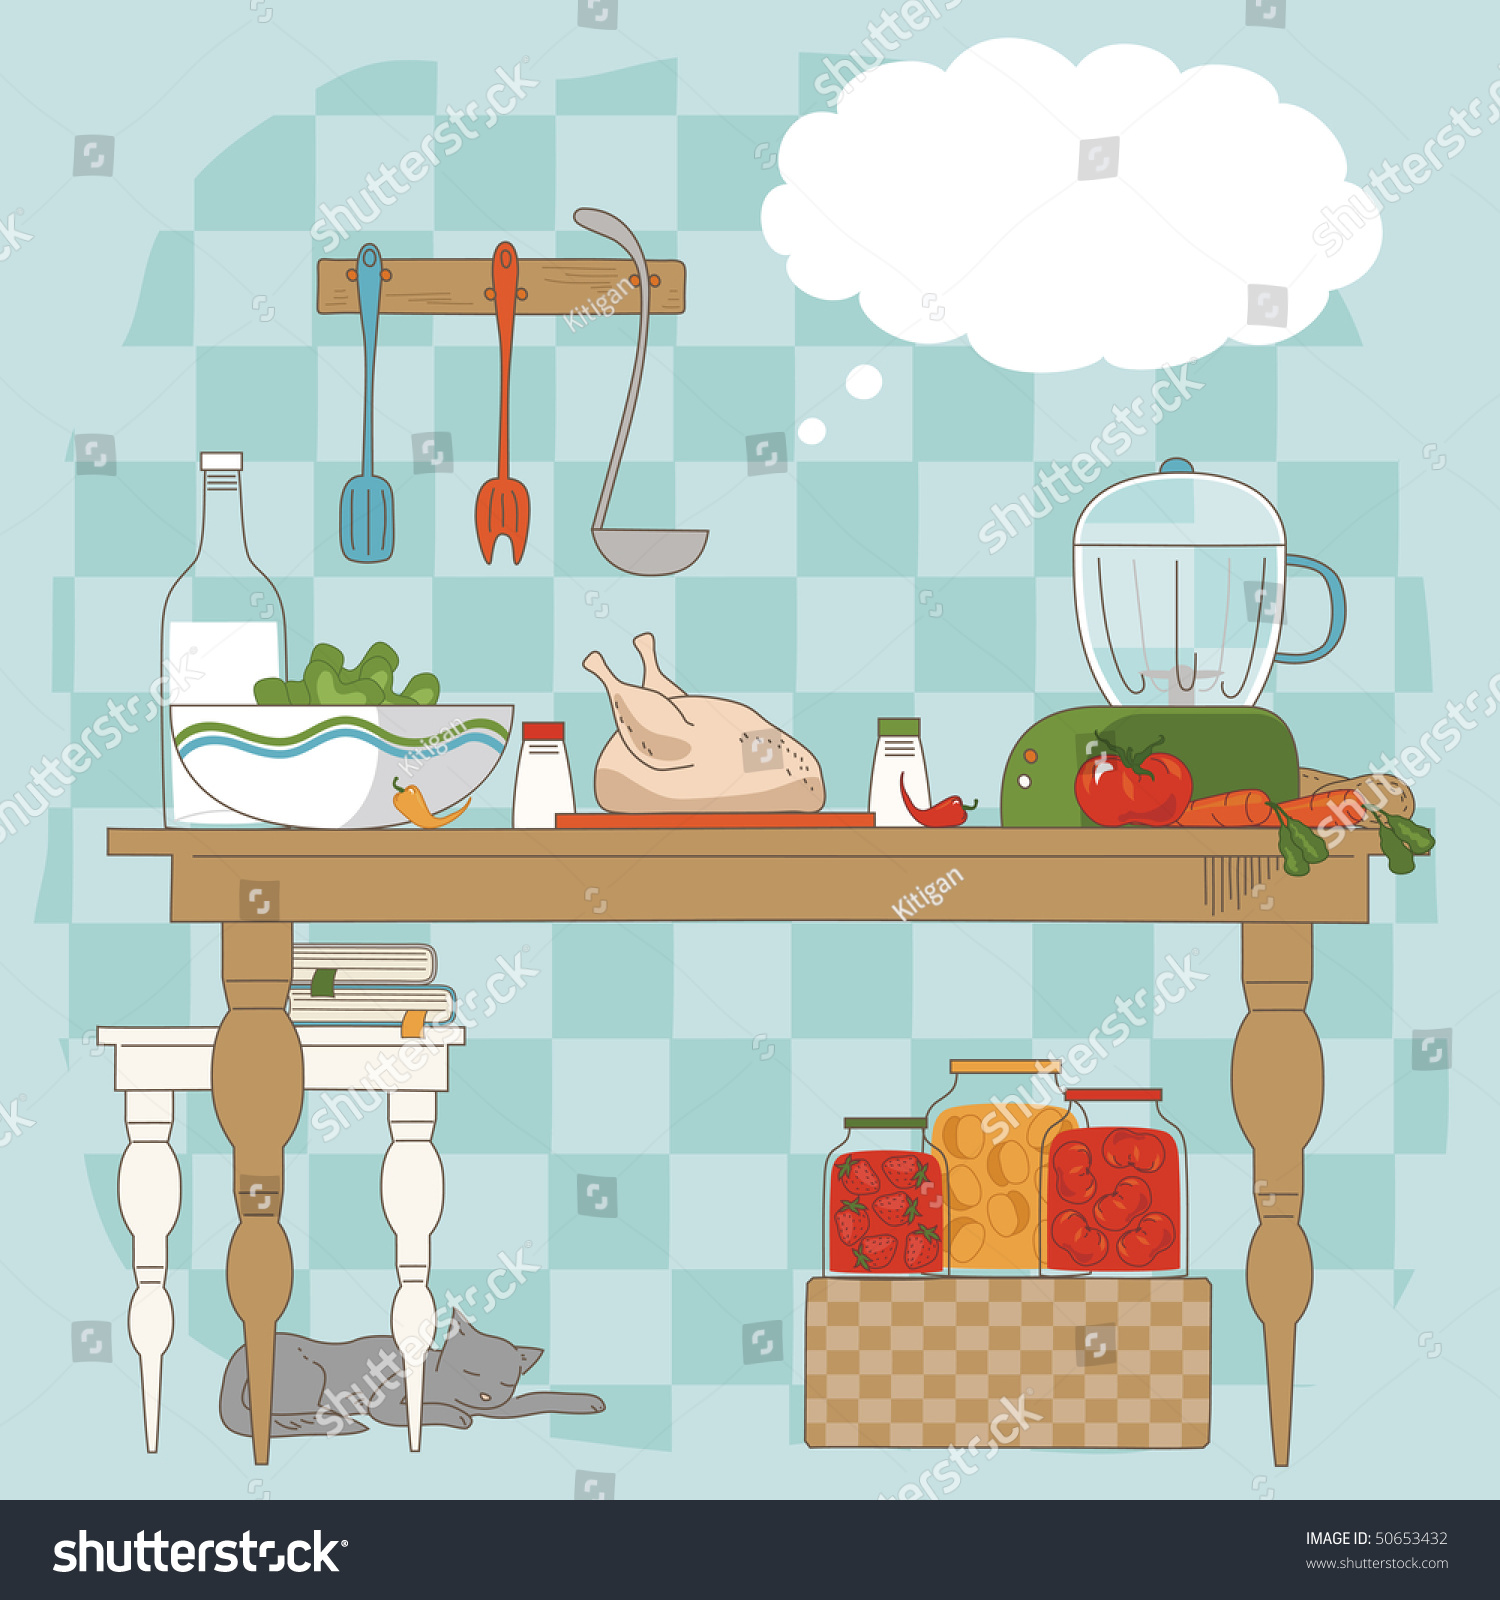 Cartoon kitchen table - Stock Vector Kitchen Table With Utensils And Ingredients For Cooking Jpg 1500x1600 Cartoon Table With Utensils